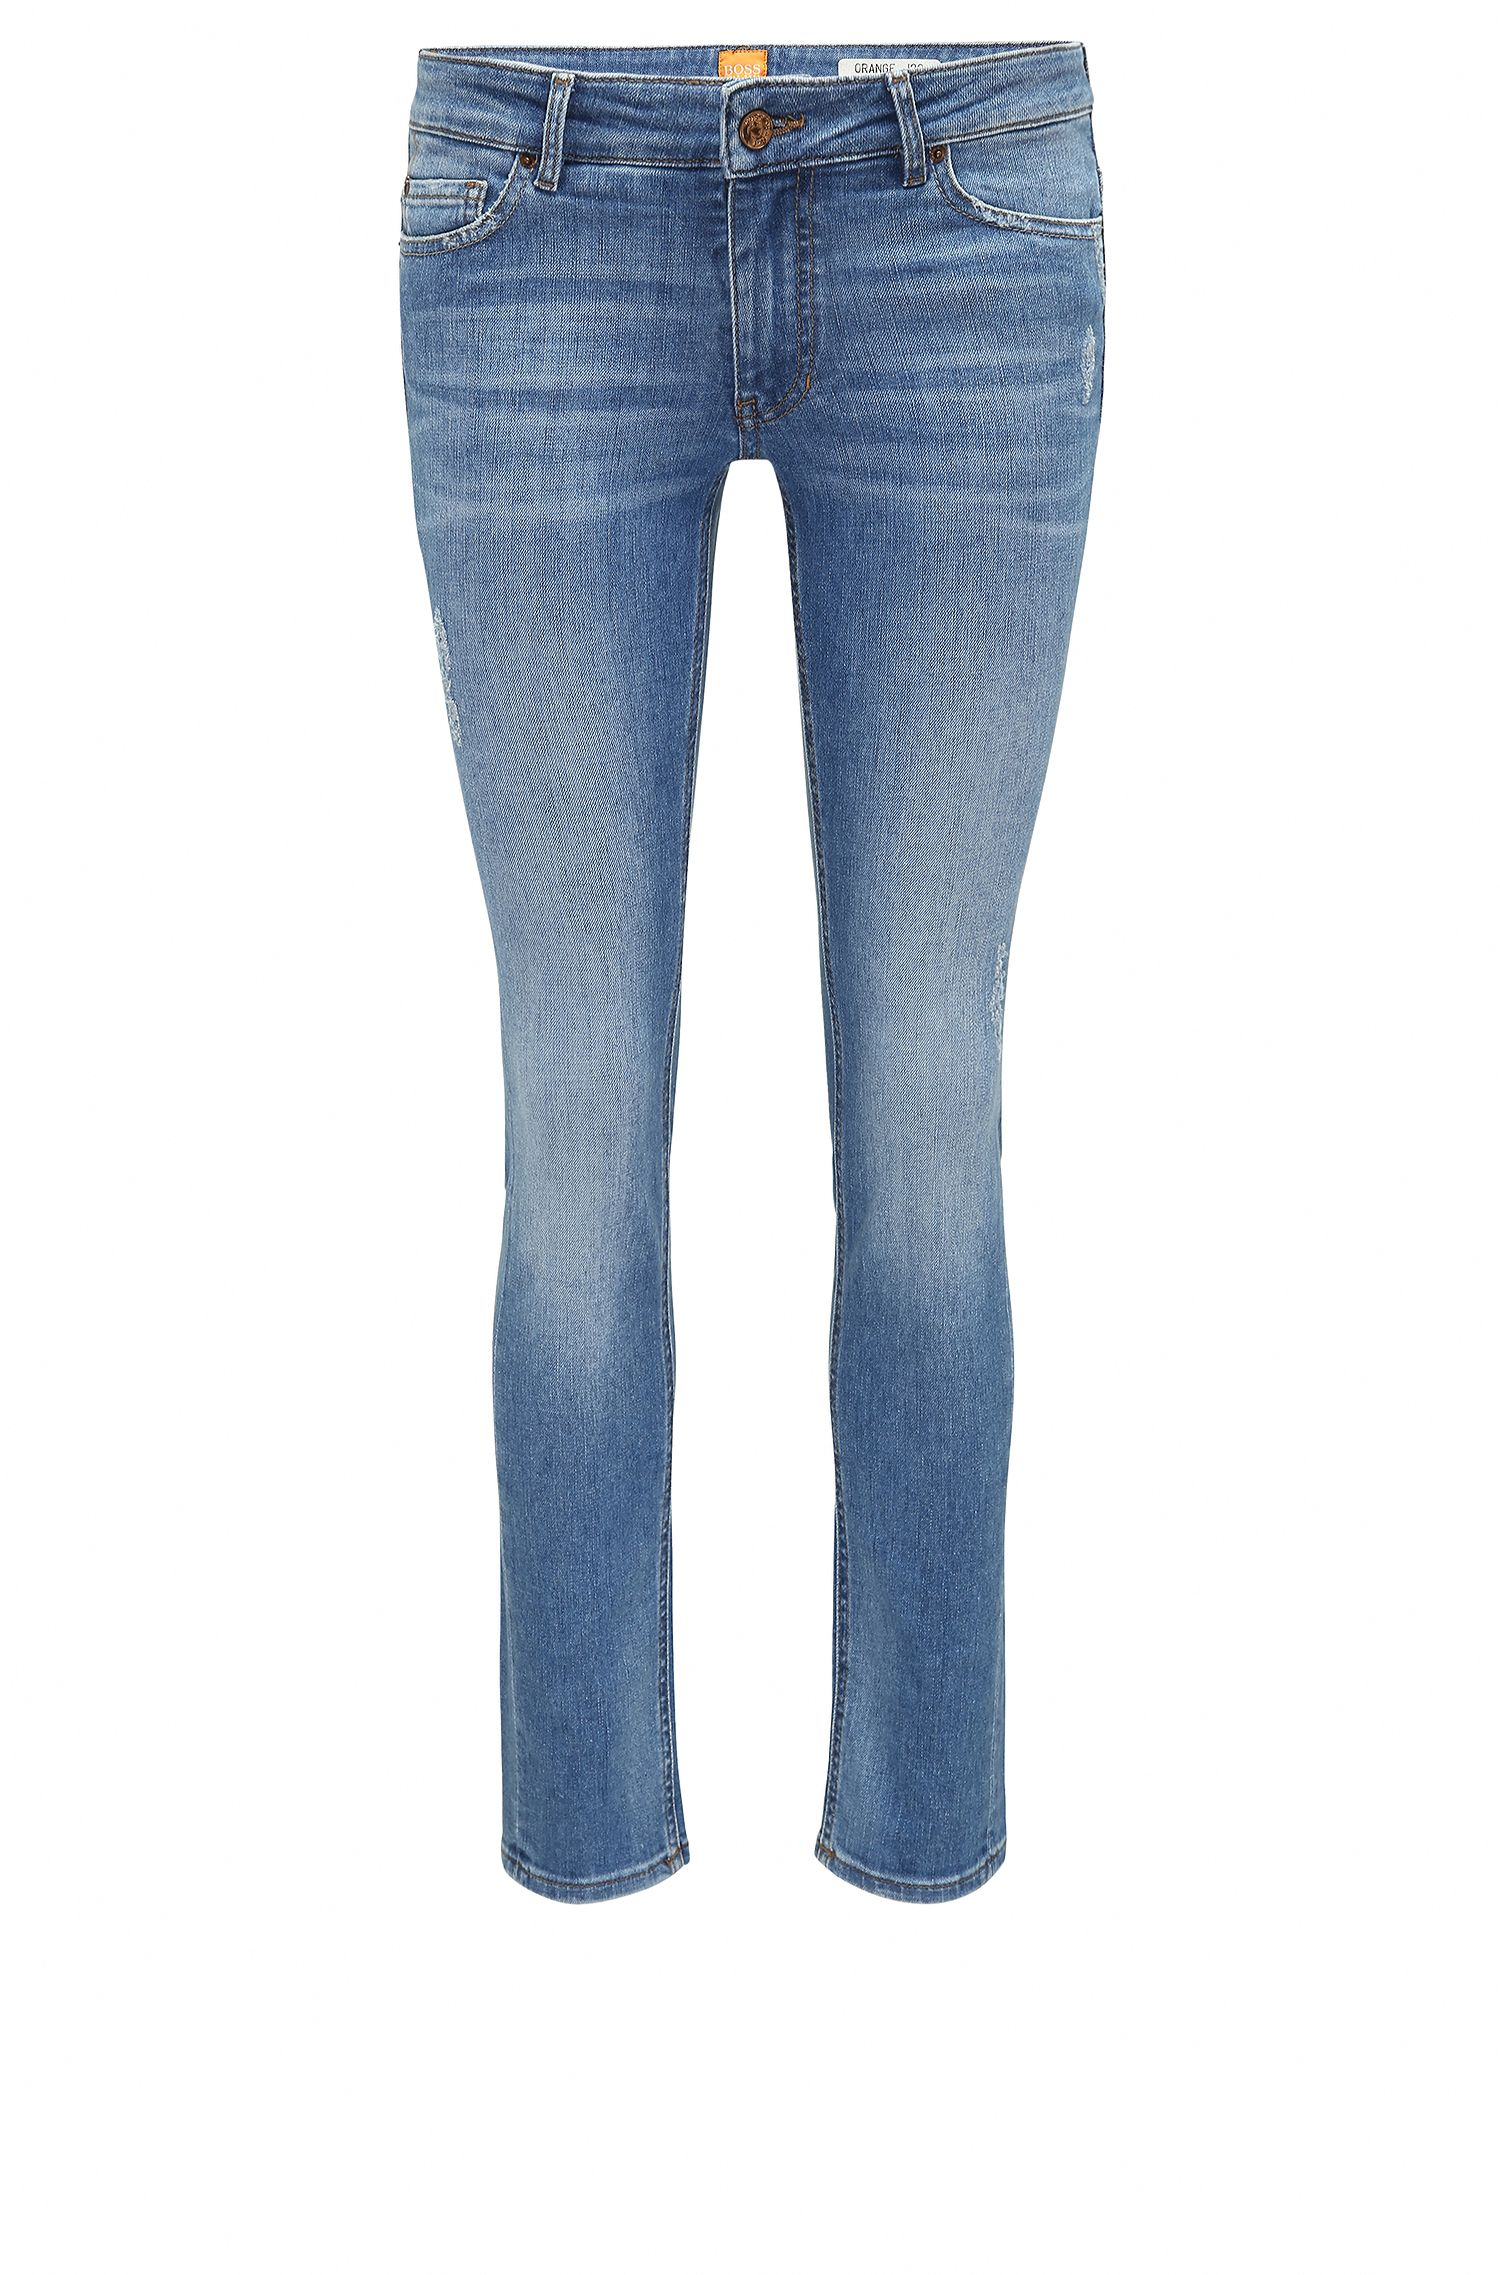 Slim-Fit Jeans aus komfortablem Stretch-Denim im Destroyed-Look